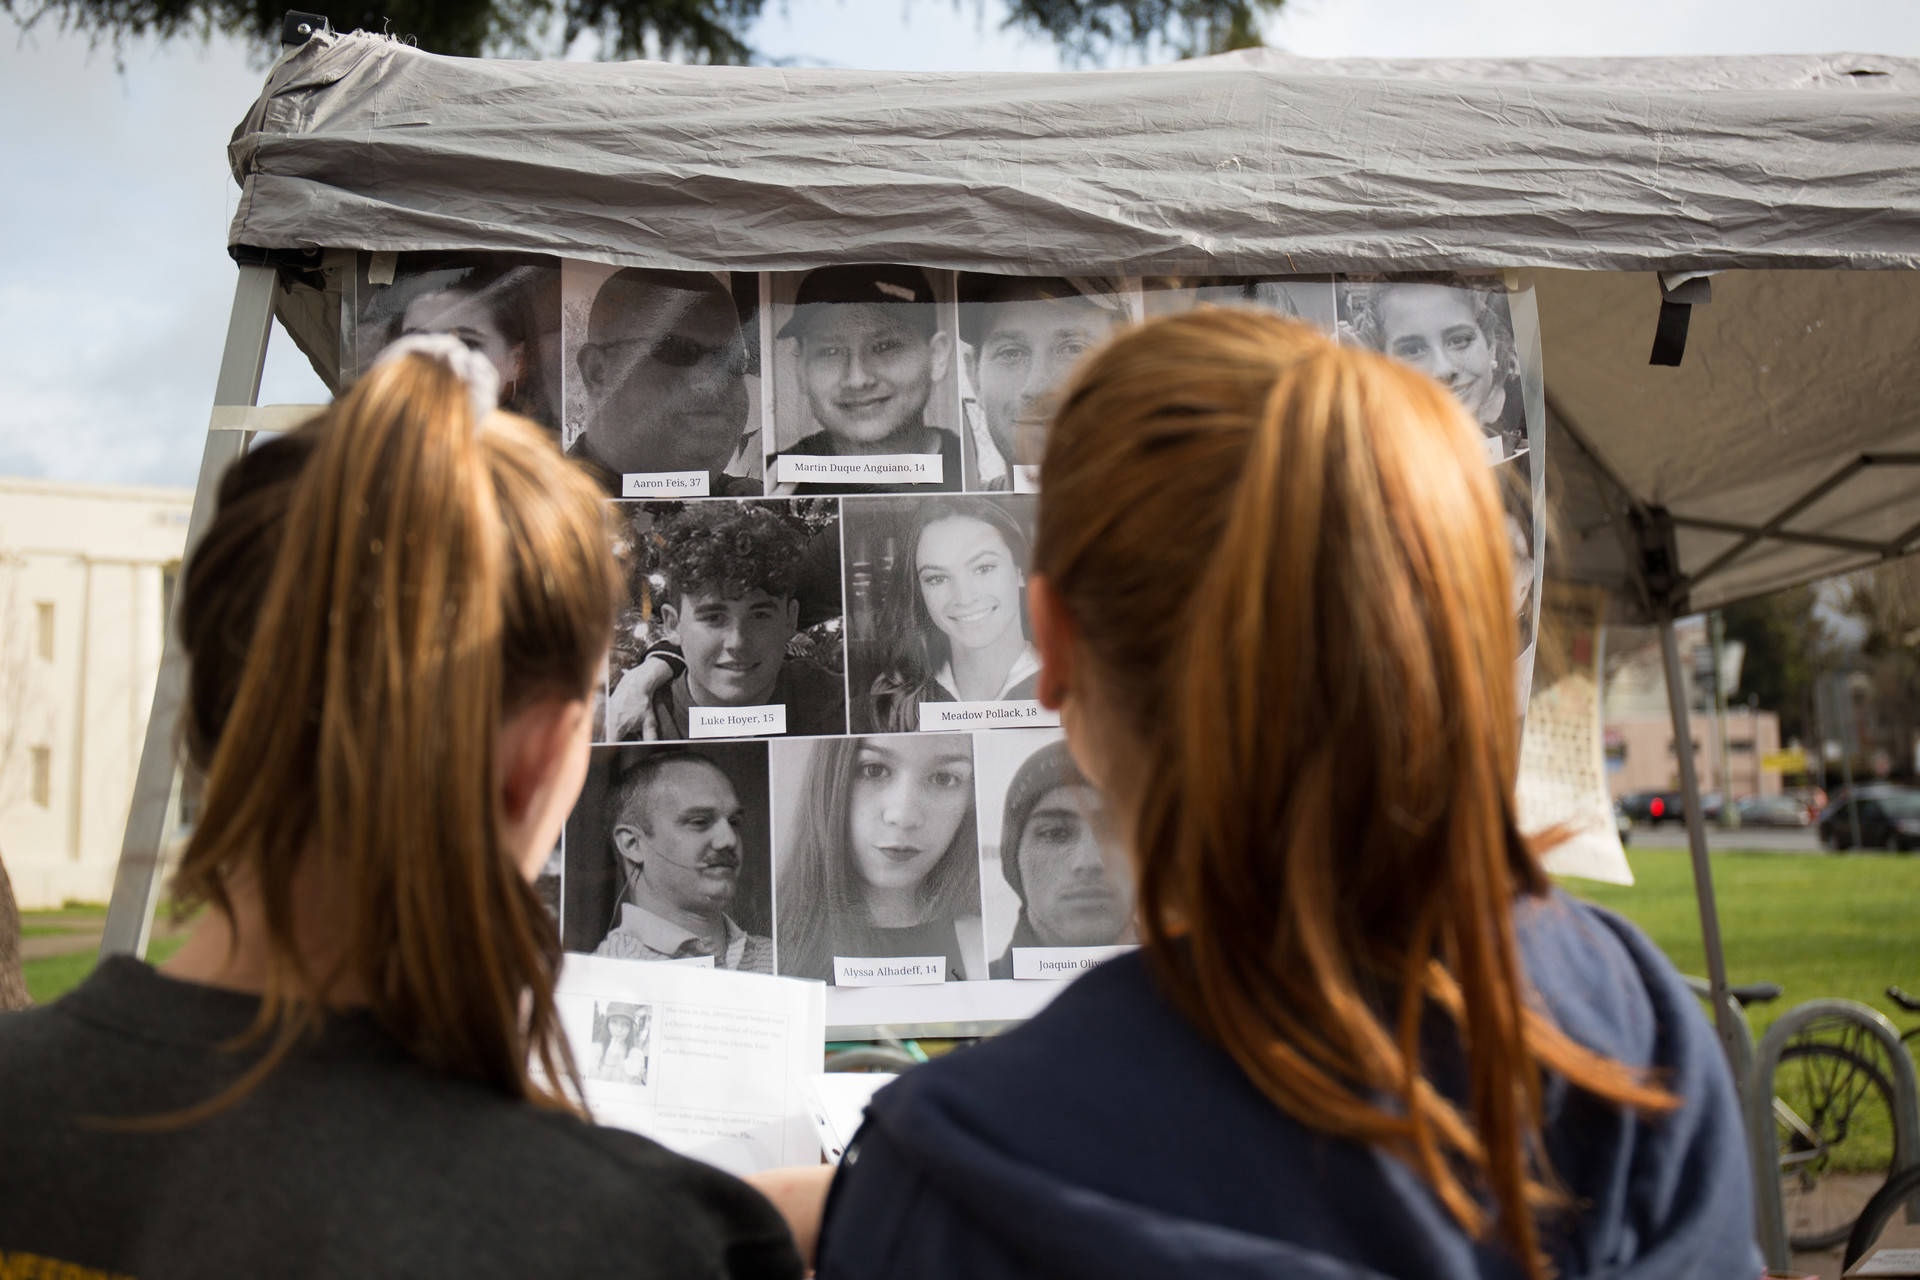 Students at Oakland Technical High School look at a billboard with photos of the 17 victims of the Parkland, Florida, mass shooting during a walkout to protest gun violence on March 14, 2018. Samantha Shanahan/KQED